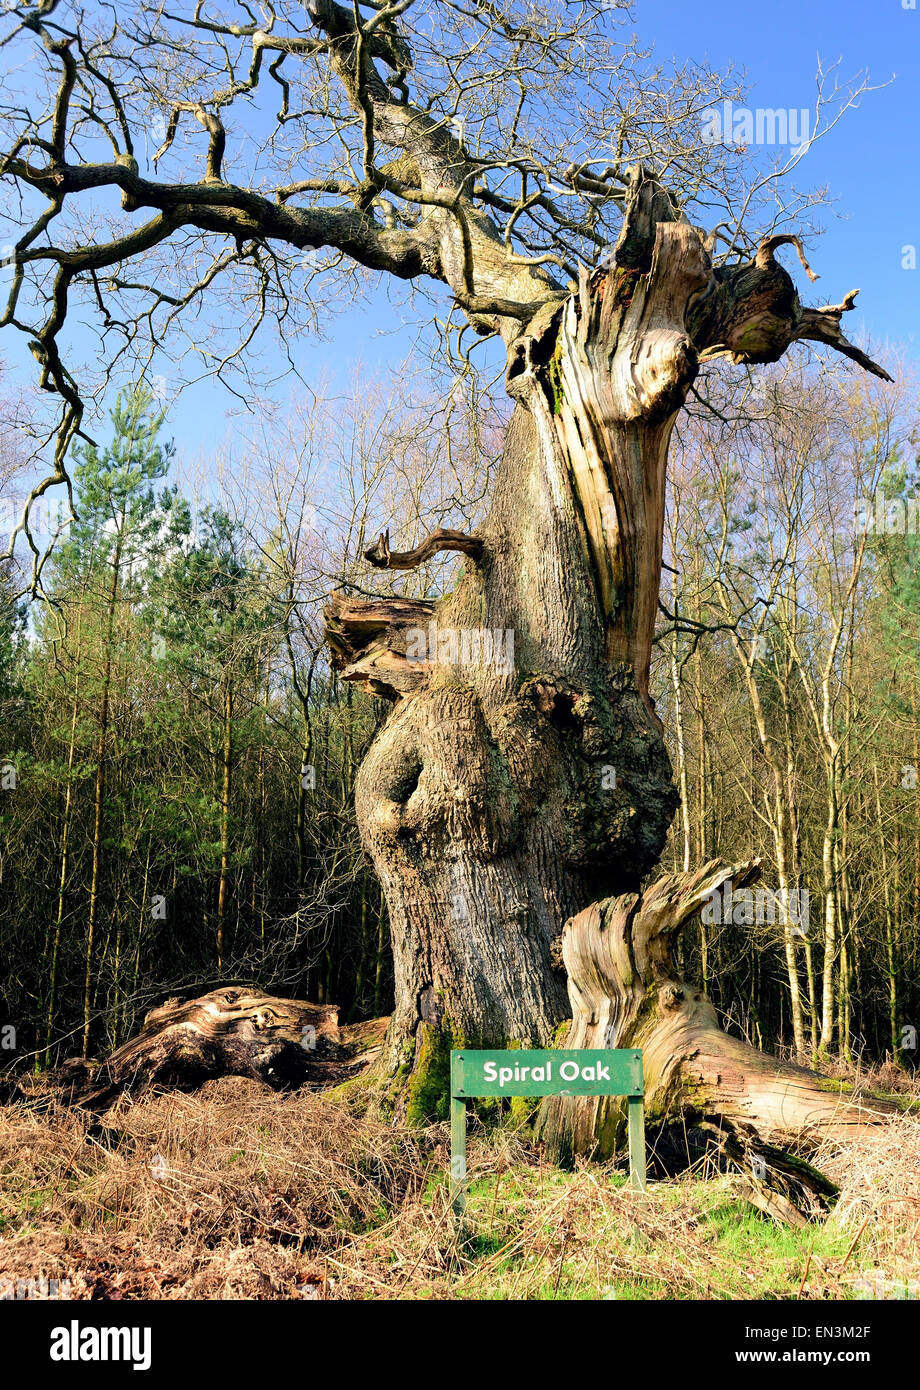 Spiral Oak, one of the ancient trees of Savernake Forest. - Stock Image